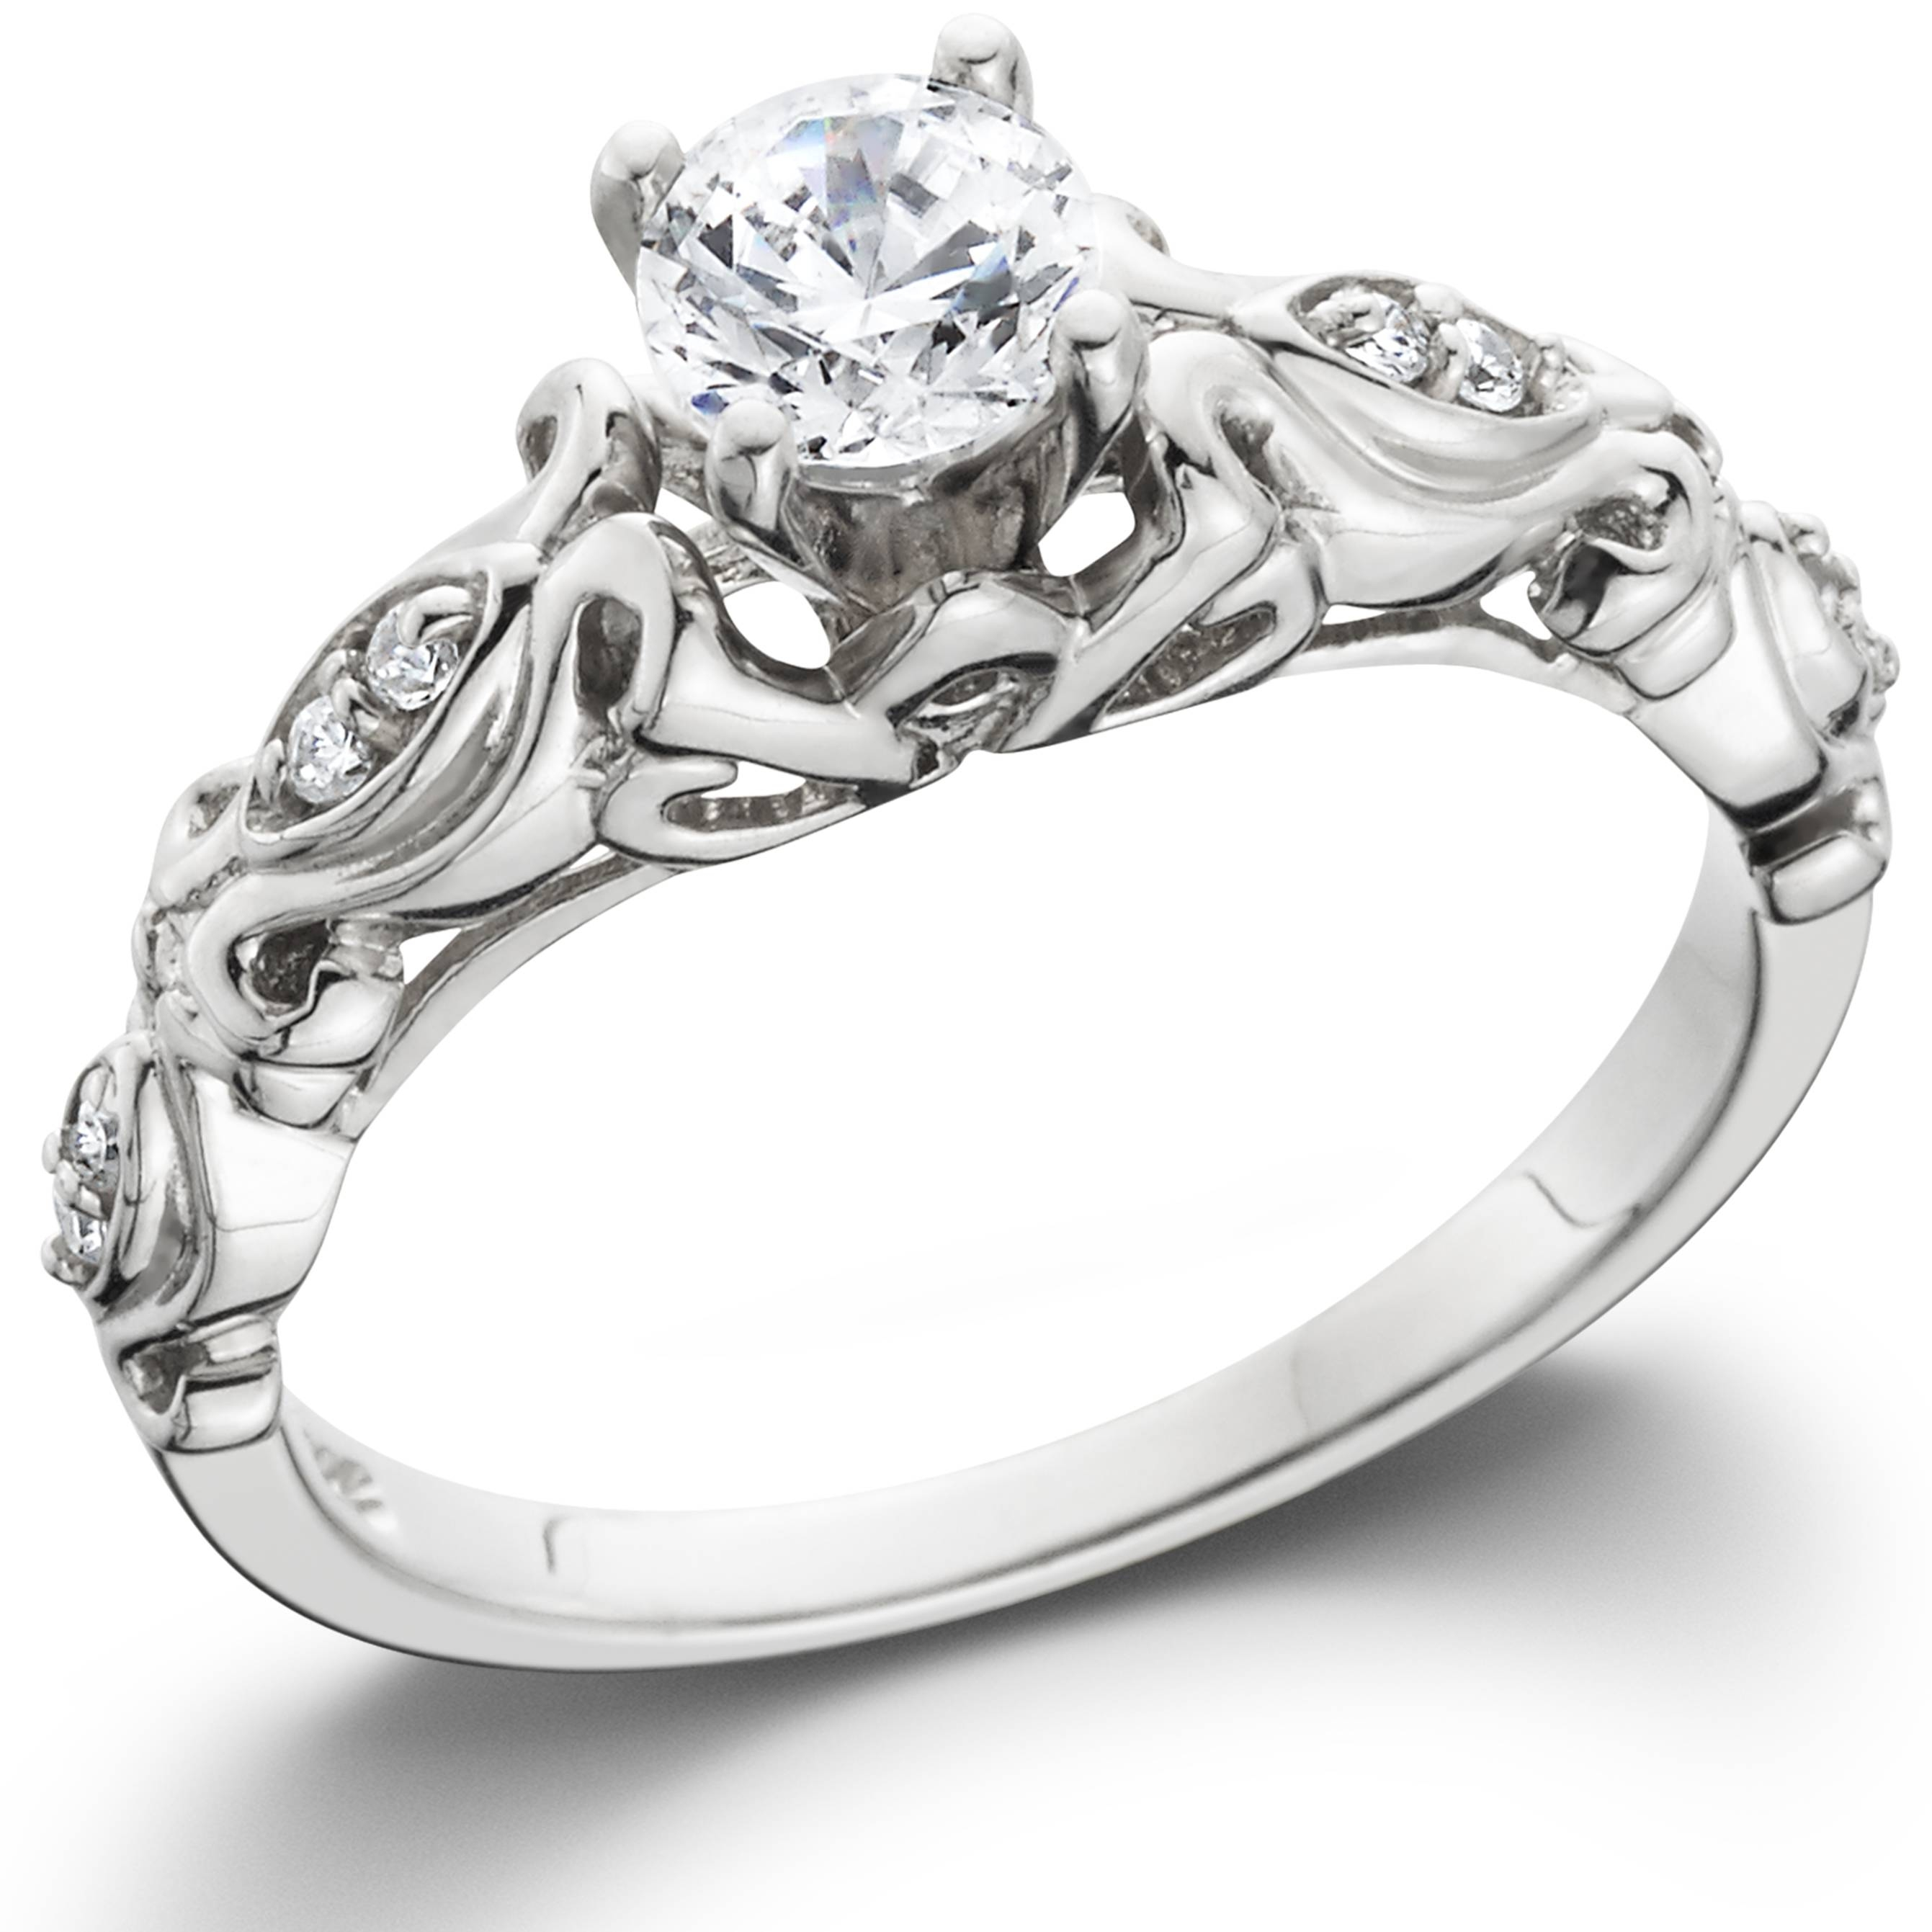 1/2Ct Vintage Diamond Solitaire Engagement Ring 14K White Gold Within Diamond Solitaire Wedding Rings (View 1 of 15)